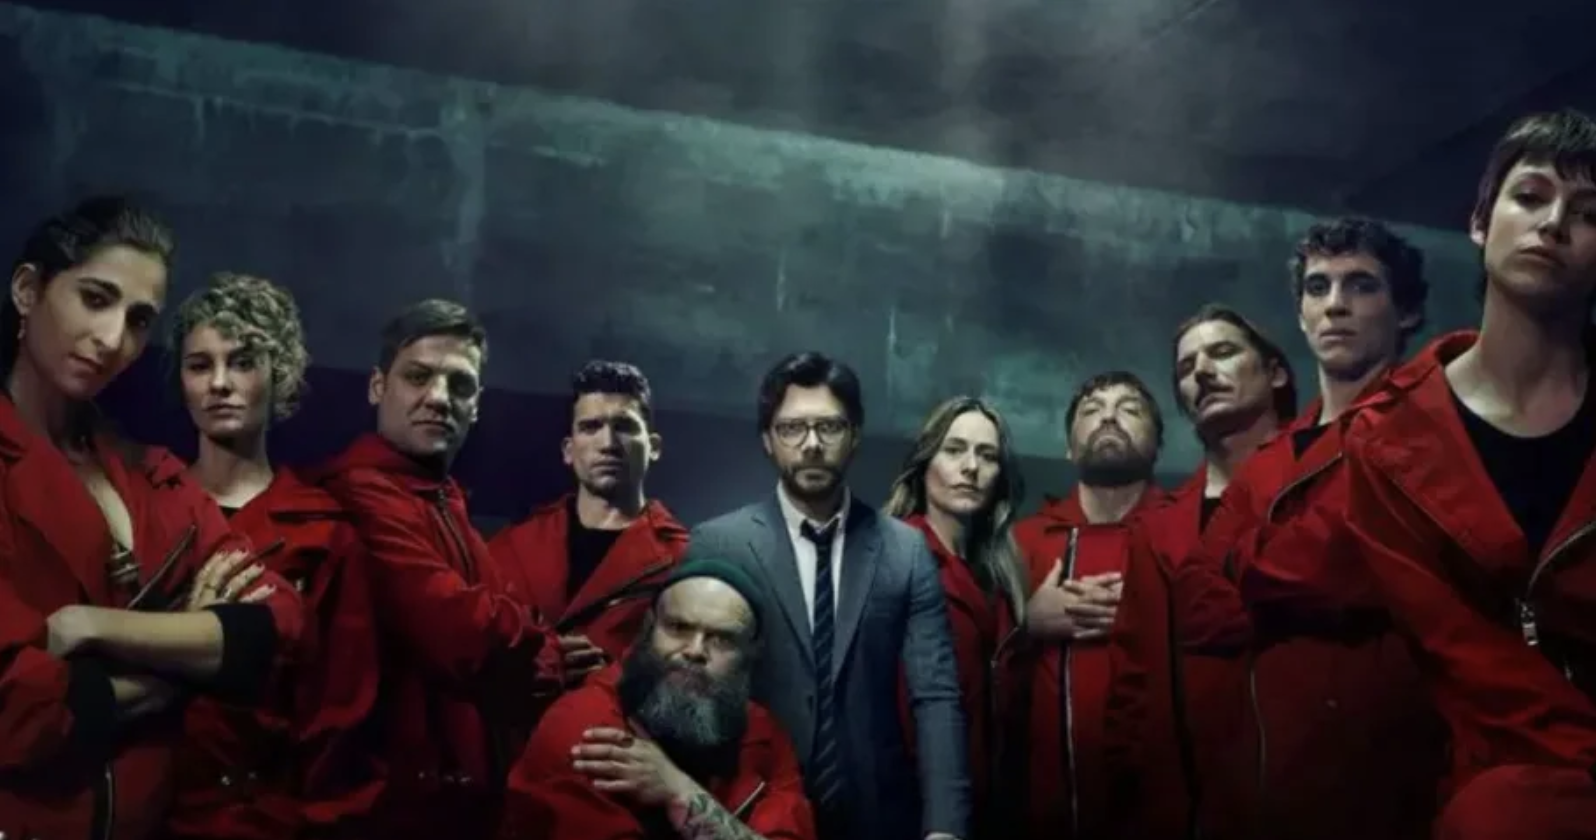 Casa de Papel